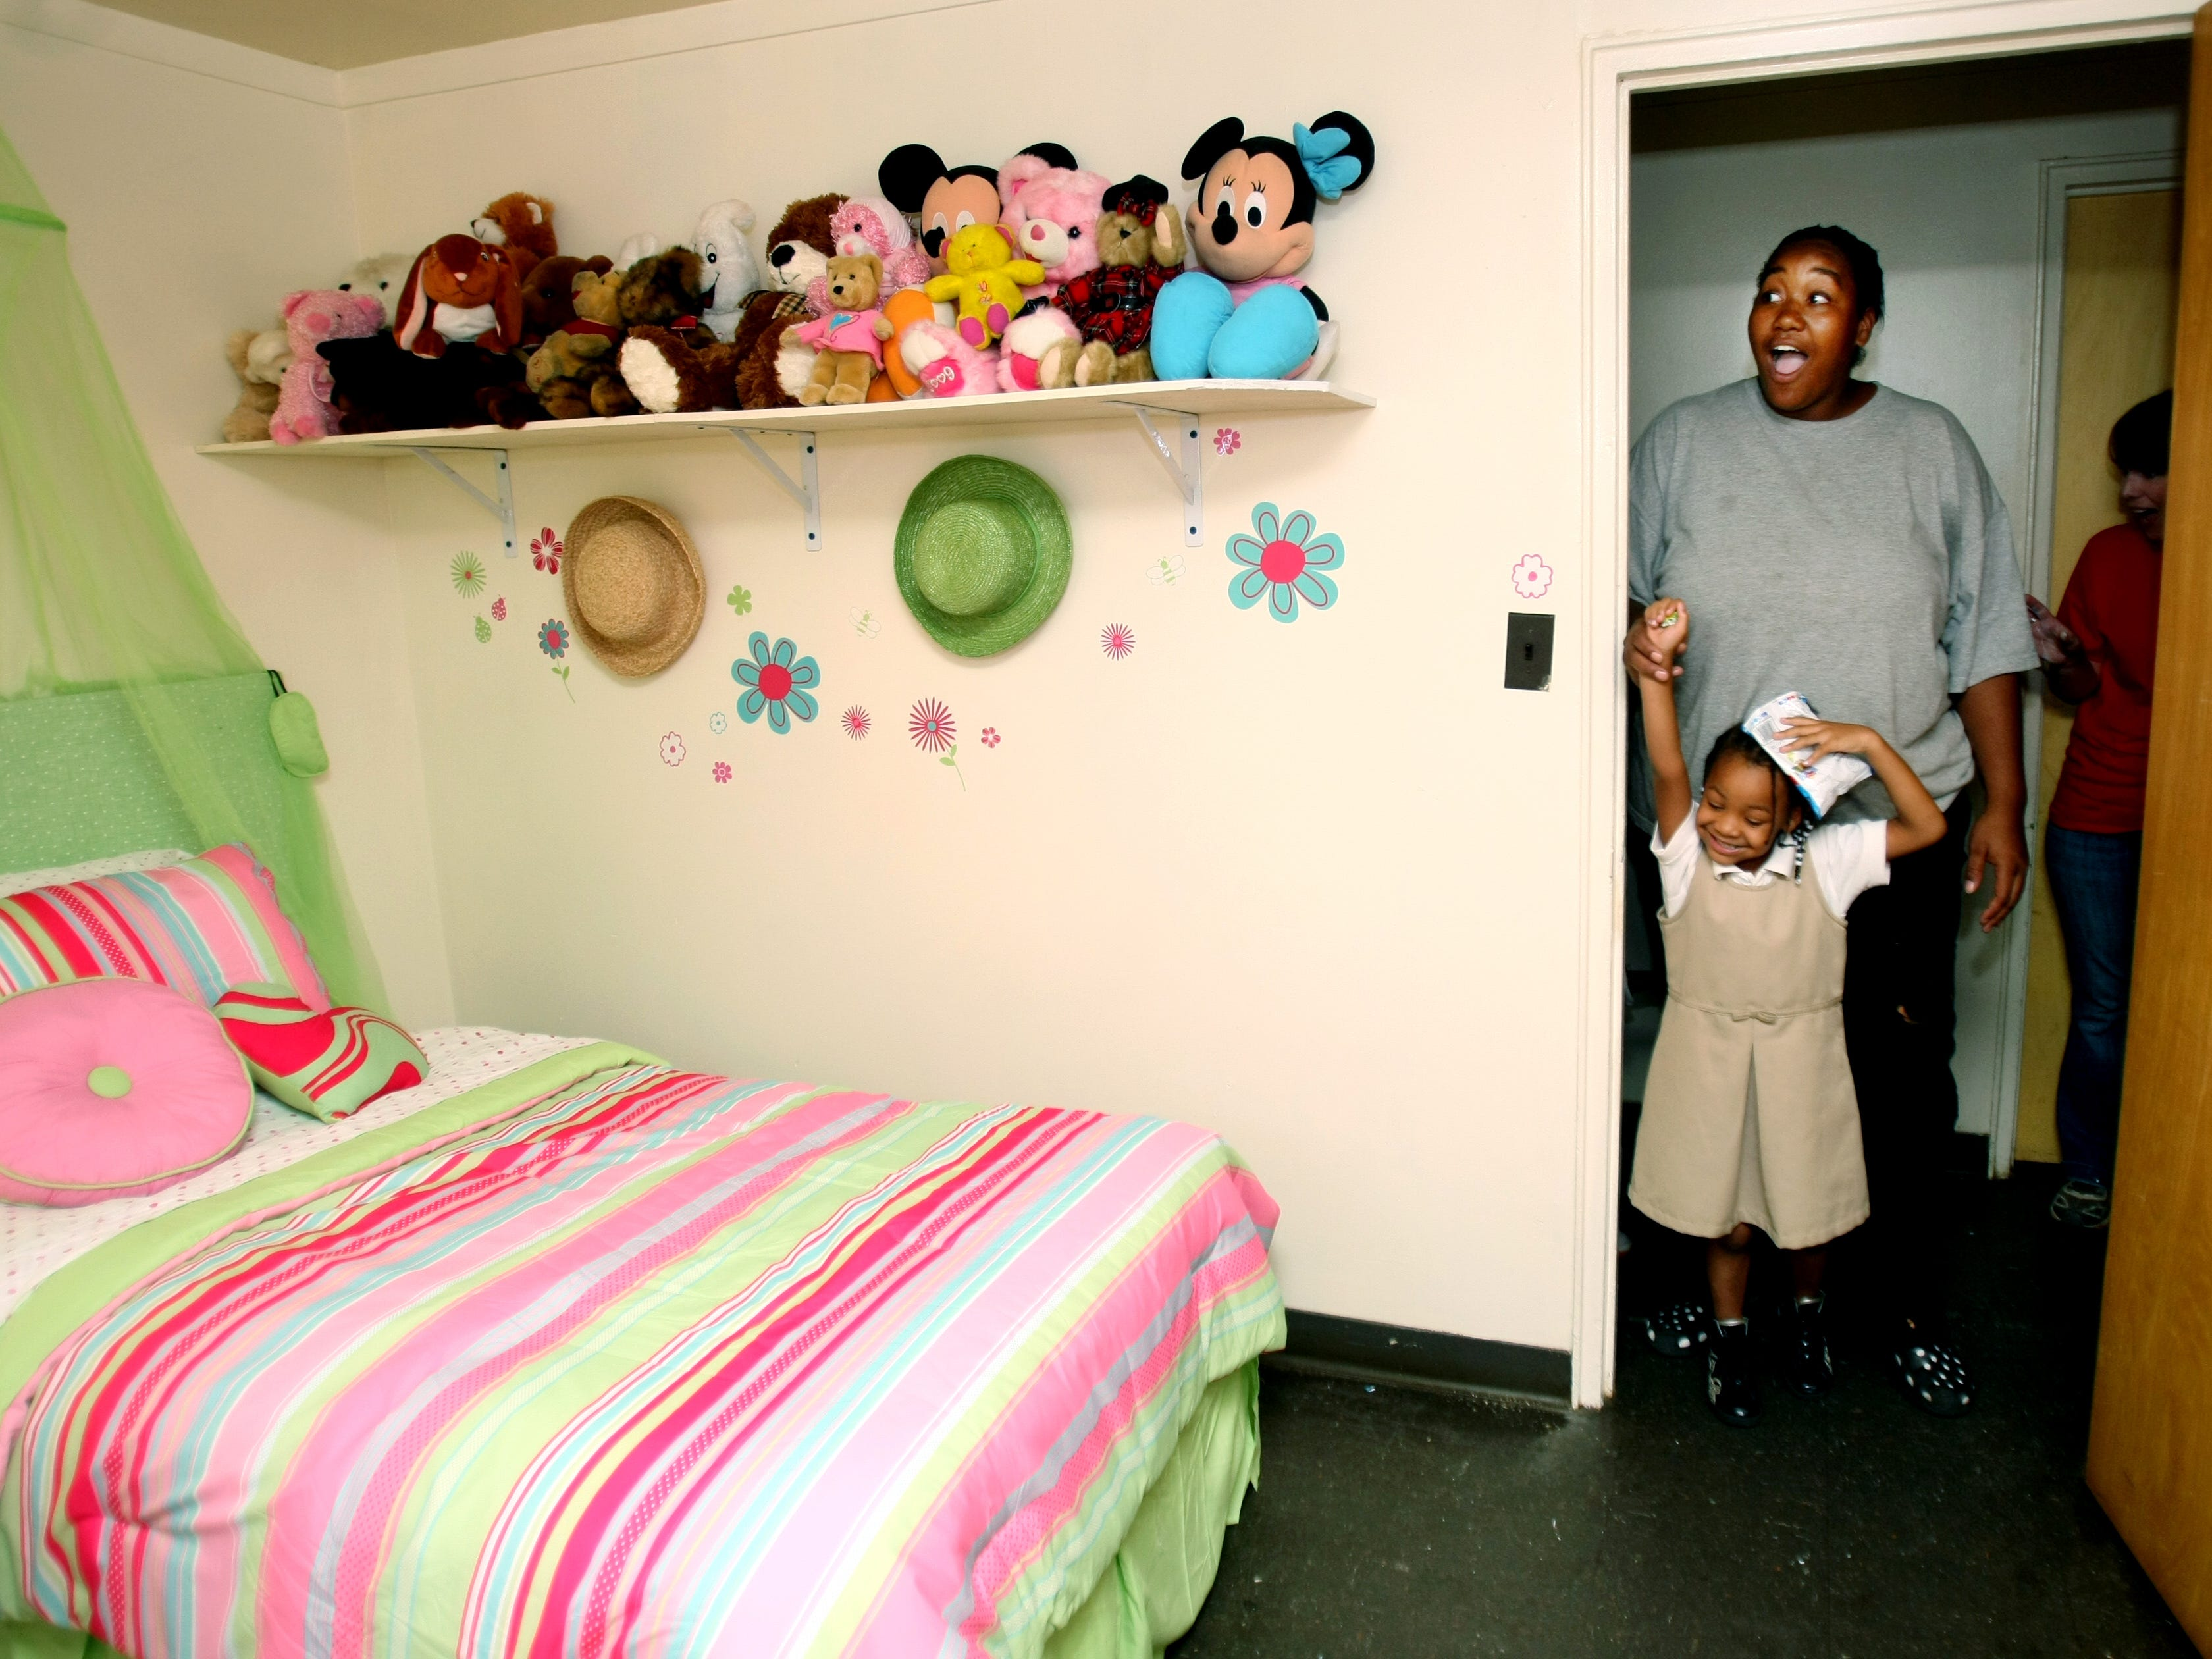 James A. Cayce Homes resident Tara Malone, 27, and her daughter Zena Malone, 4, walk into Zena's newly designed  bedroom for the first time Sept. 26, 2009. The room was redesigned by Project Redesign, a program that provides furniture for families in immediate crisis and redesigns rooms for needy families.